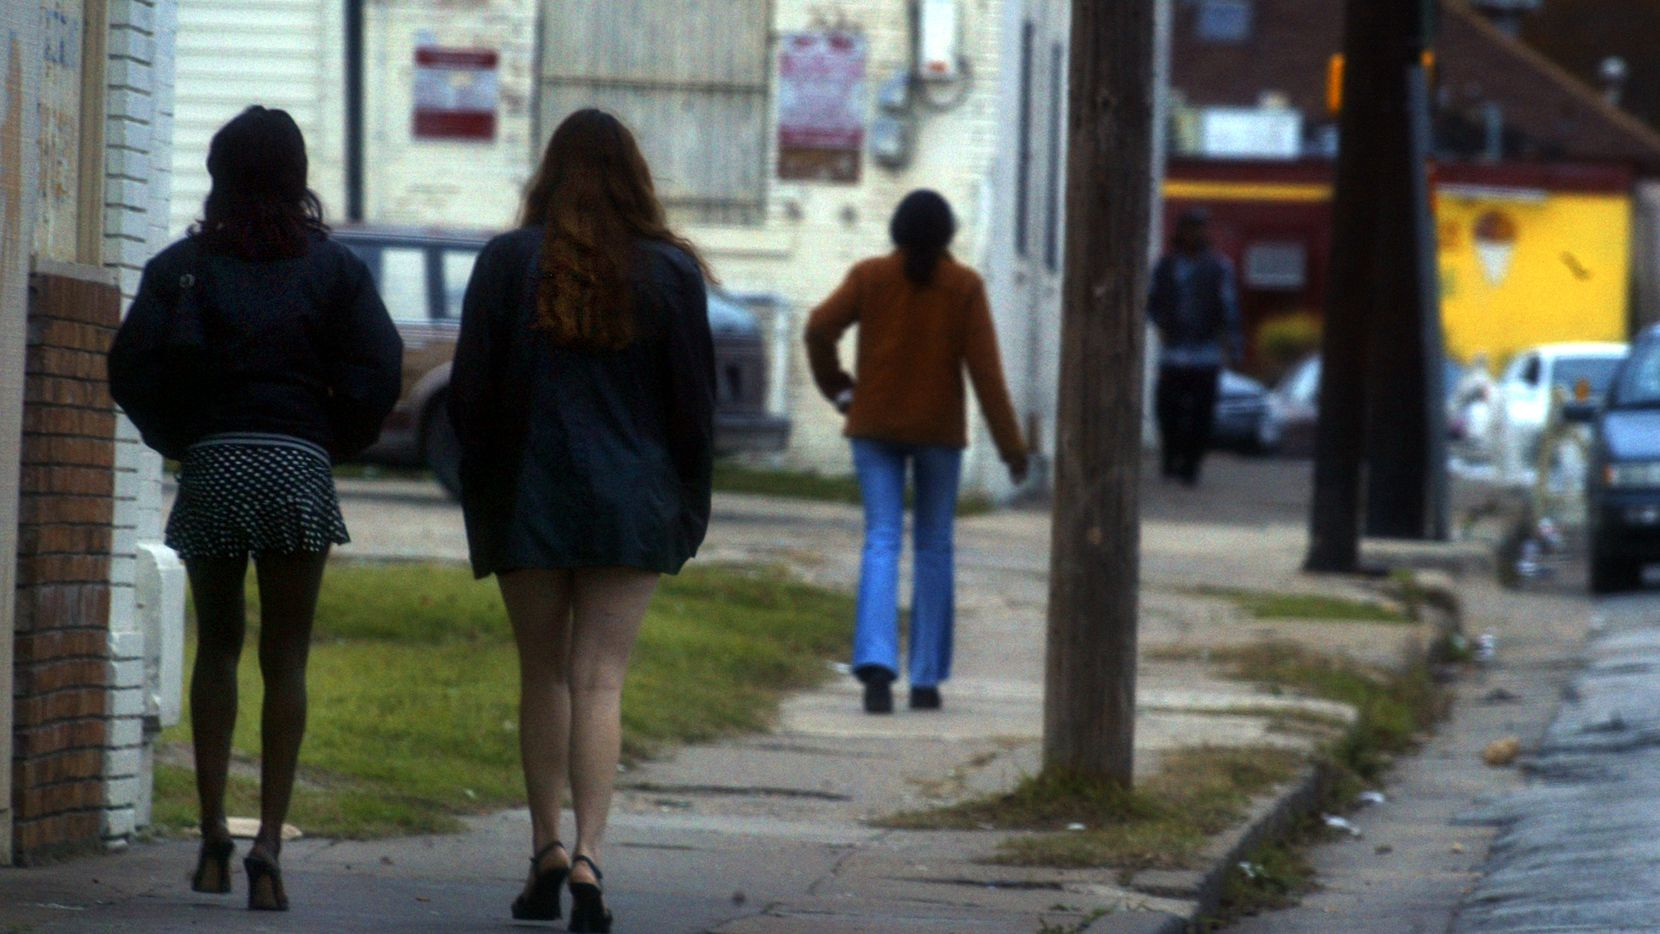 Prostitutes walk a Dallas street on a weekend afternoon.